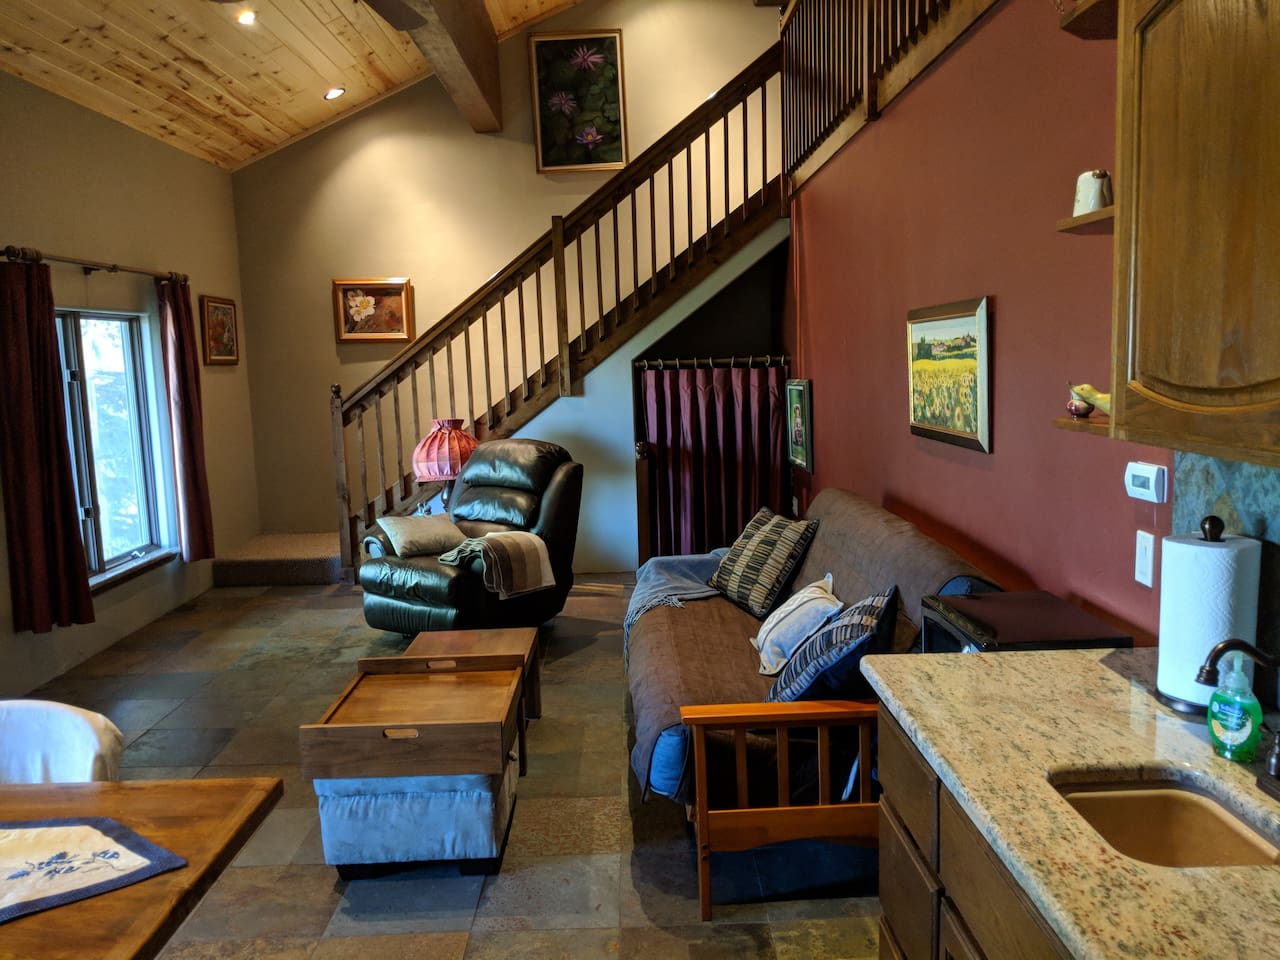 Downstairs of loft.  View from the kitchenette.  The couch is a futon.